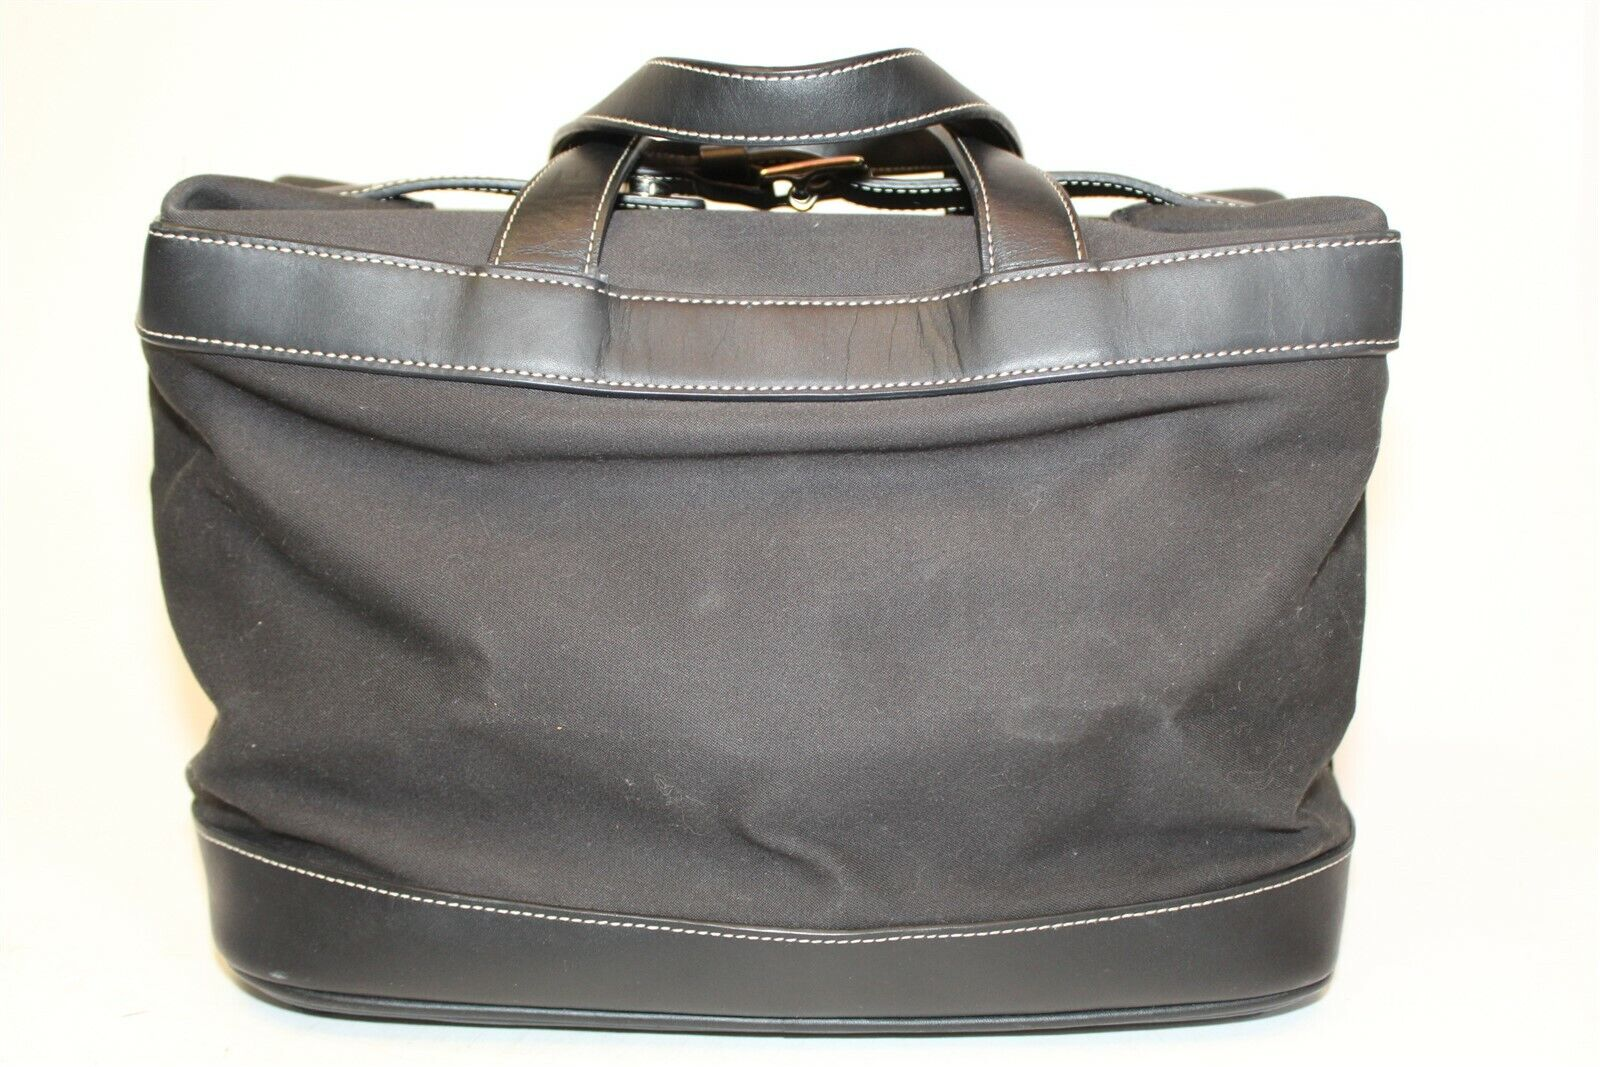 Coach L25-5459 Large Black Leather Canvas Travel Weekender Duffle Tote Bag 2002 - $10.55